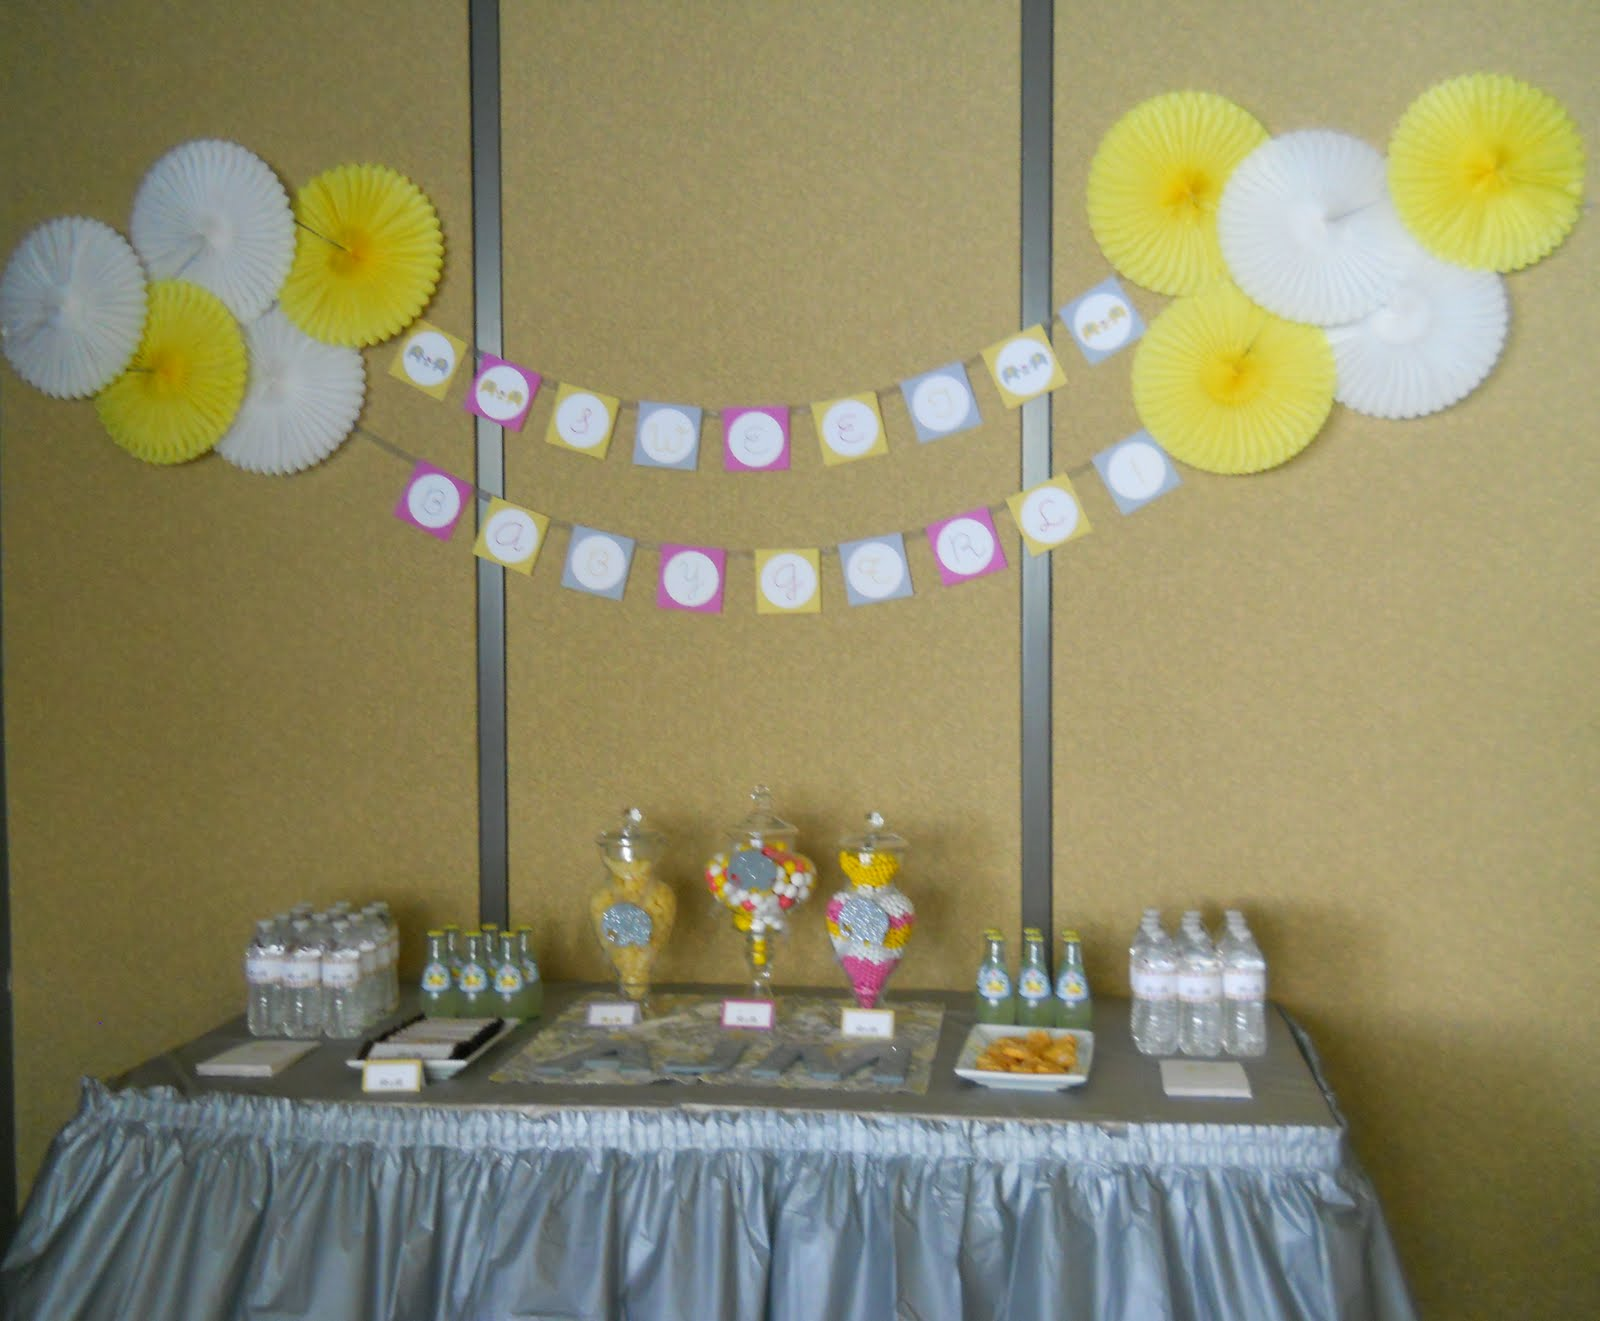 Baby shower decoration ideas interior home design for Baby shower at home decorations